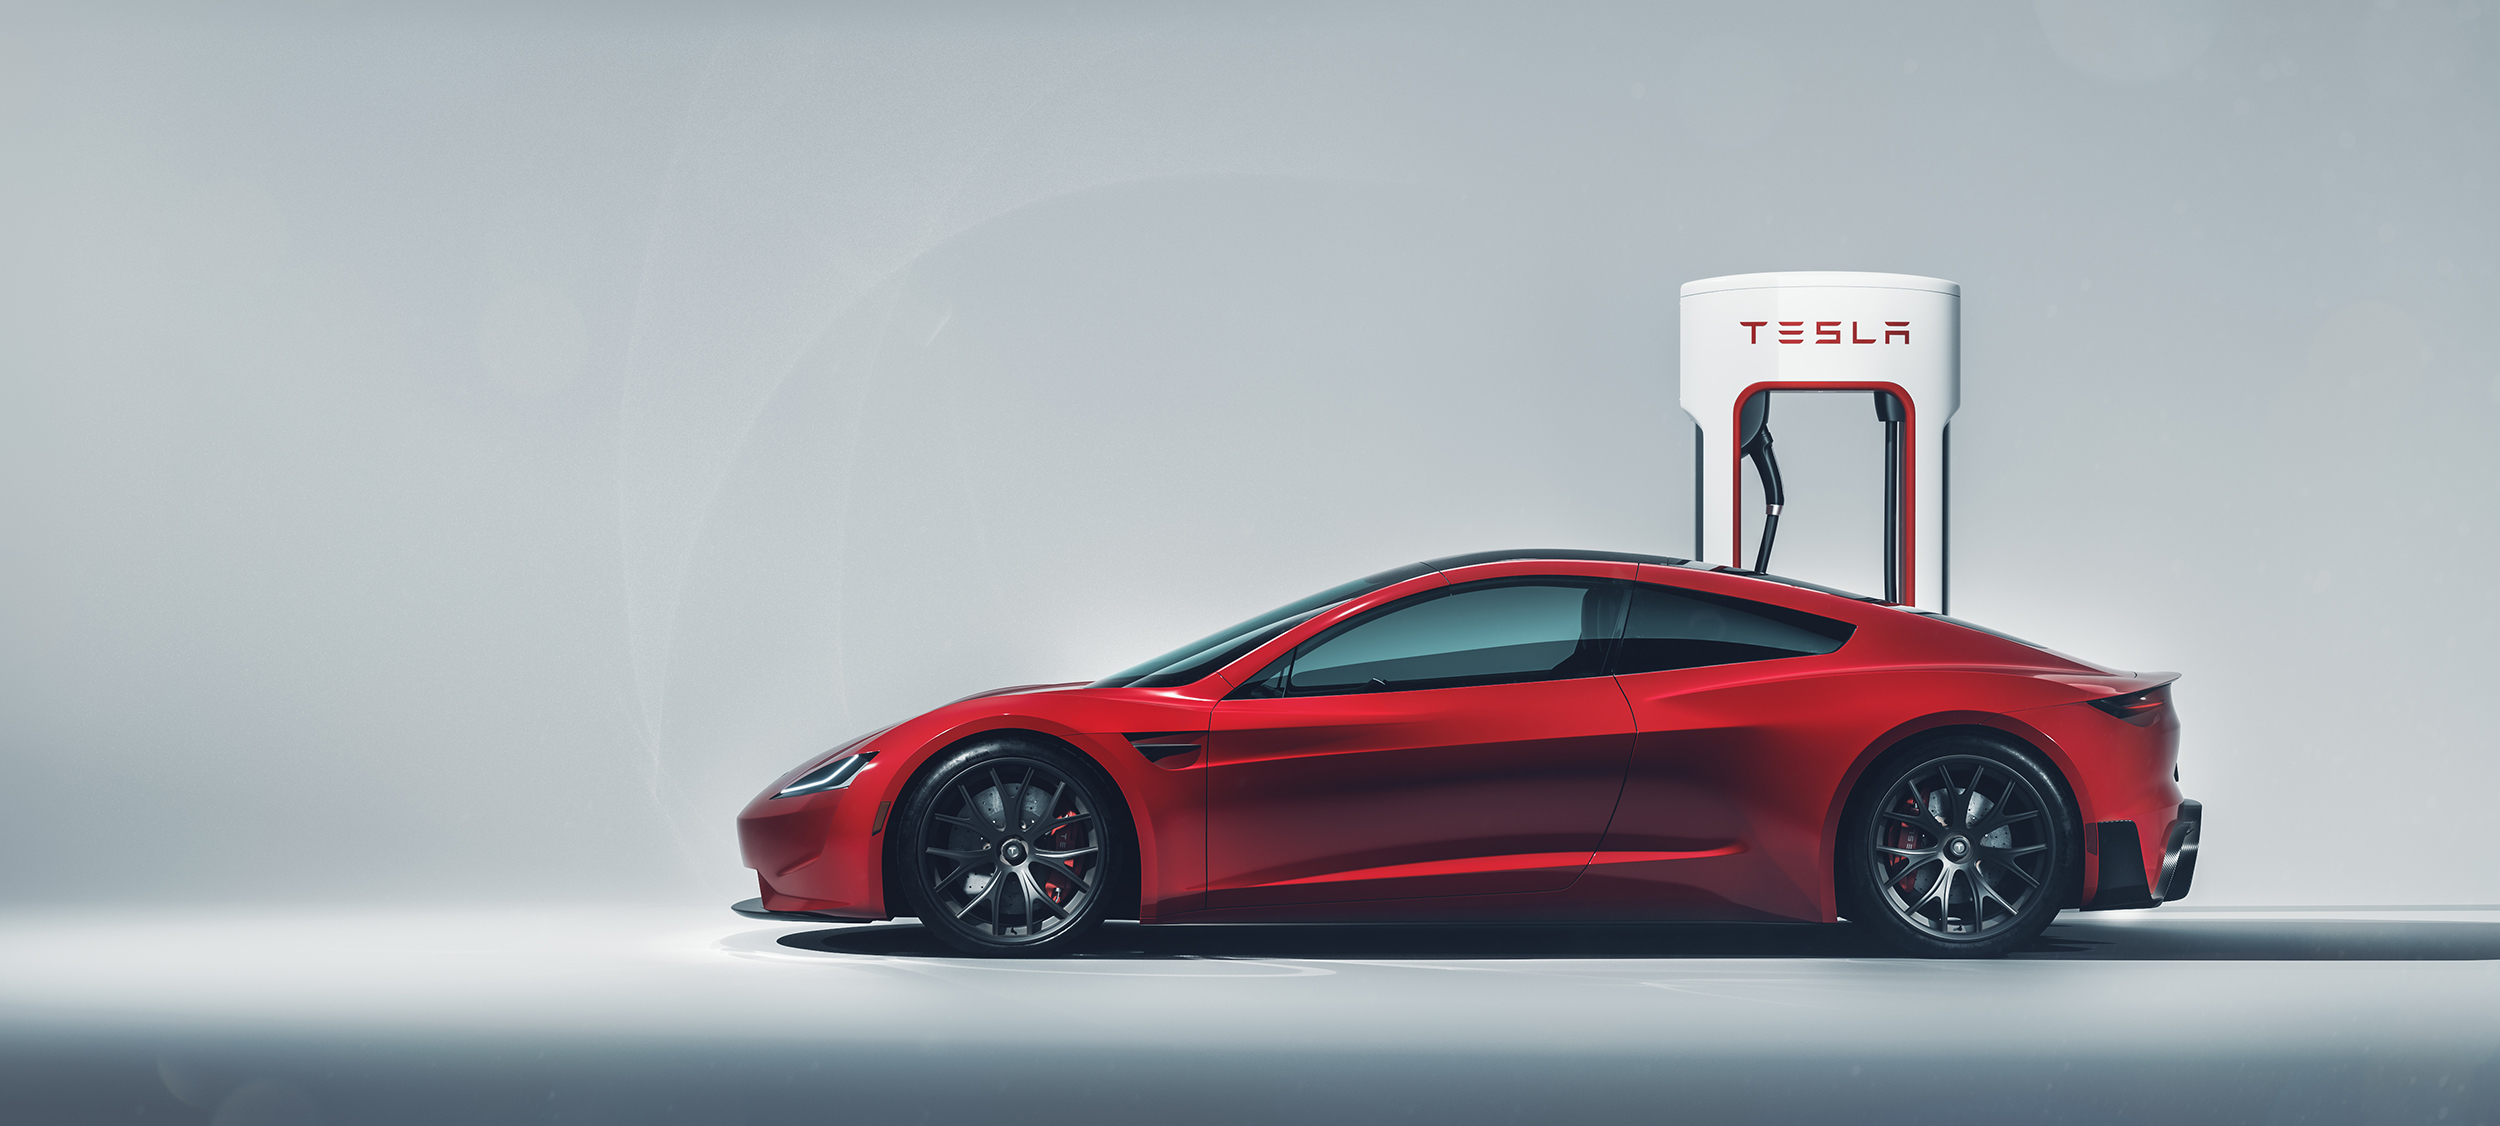 Tesla Roadster Charging Hd Cars 4k Wallpapers Images Backgrounds Photos And Pictures